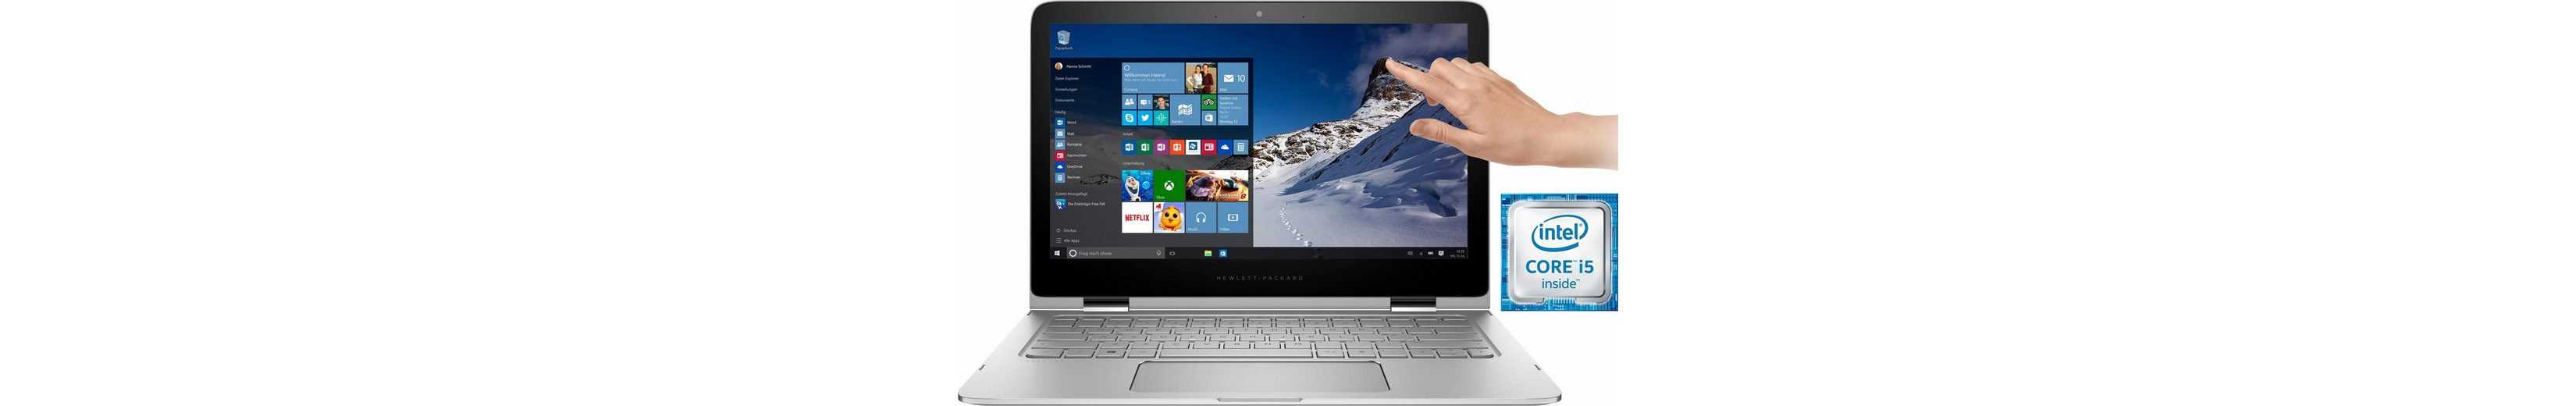 HP Spectre 13-4151ng Notebook, Intel® Core™ i5, 33,8 cm (13,3 Zoll), 256 GB Speicher